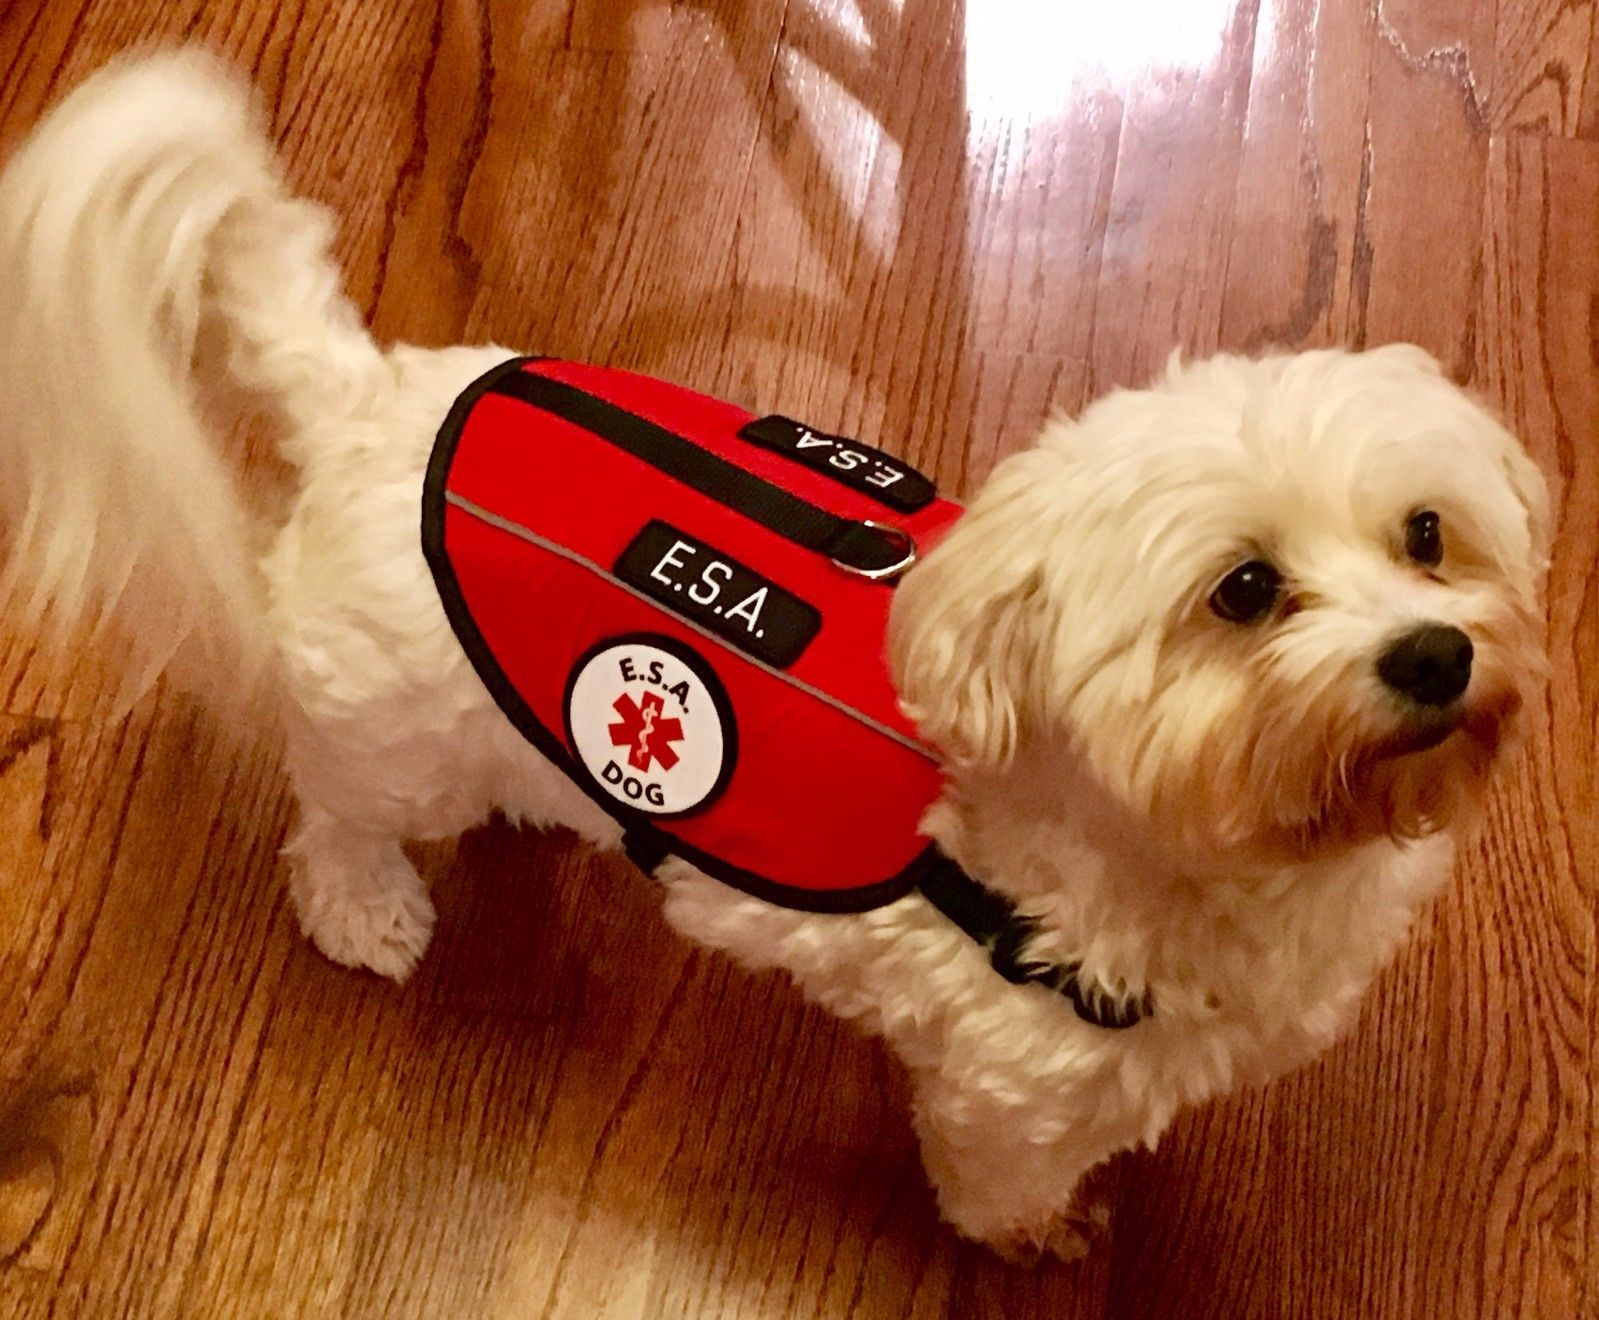 What types of emotional support dog vests are there?